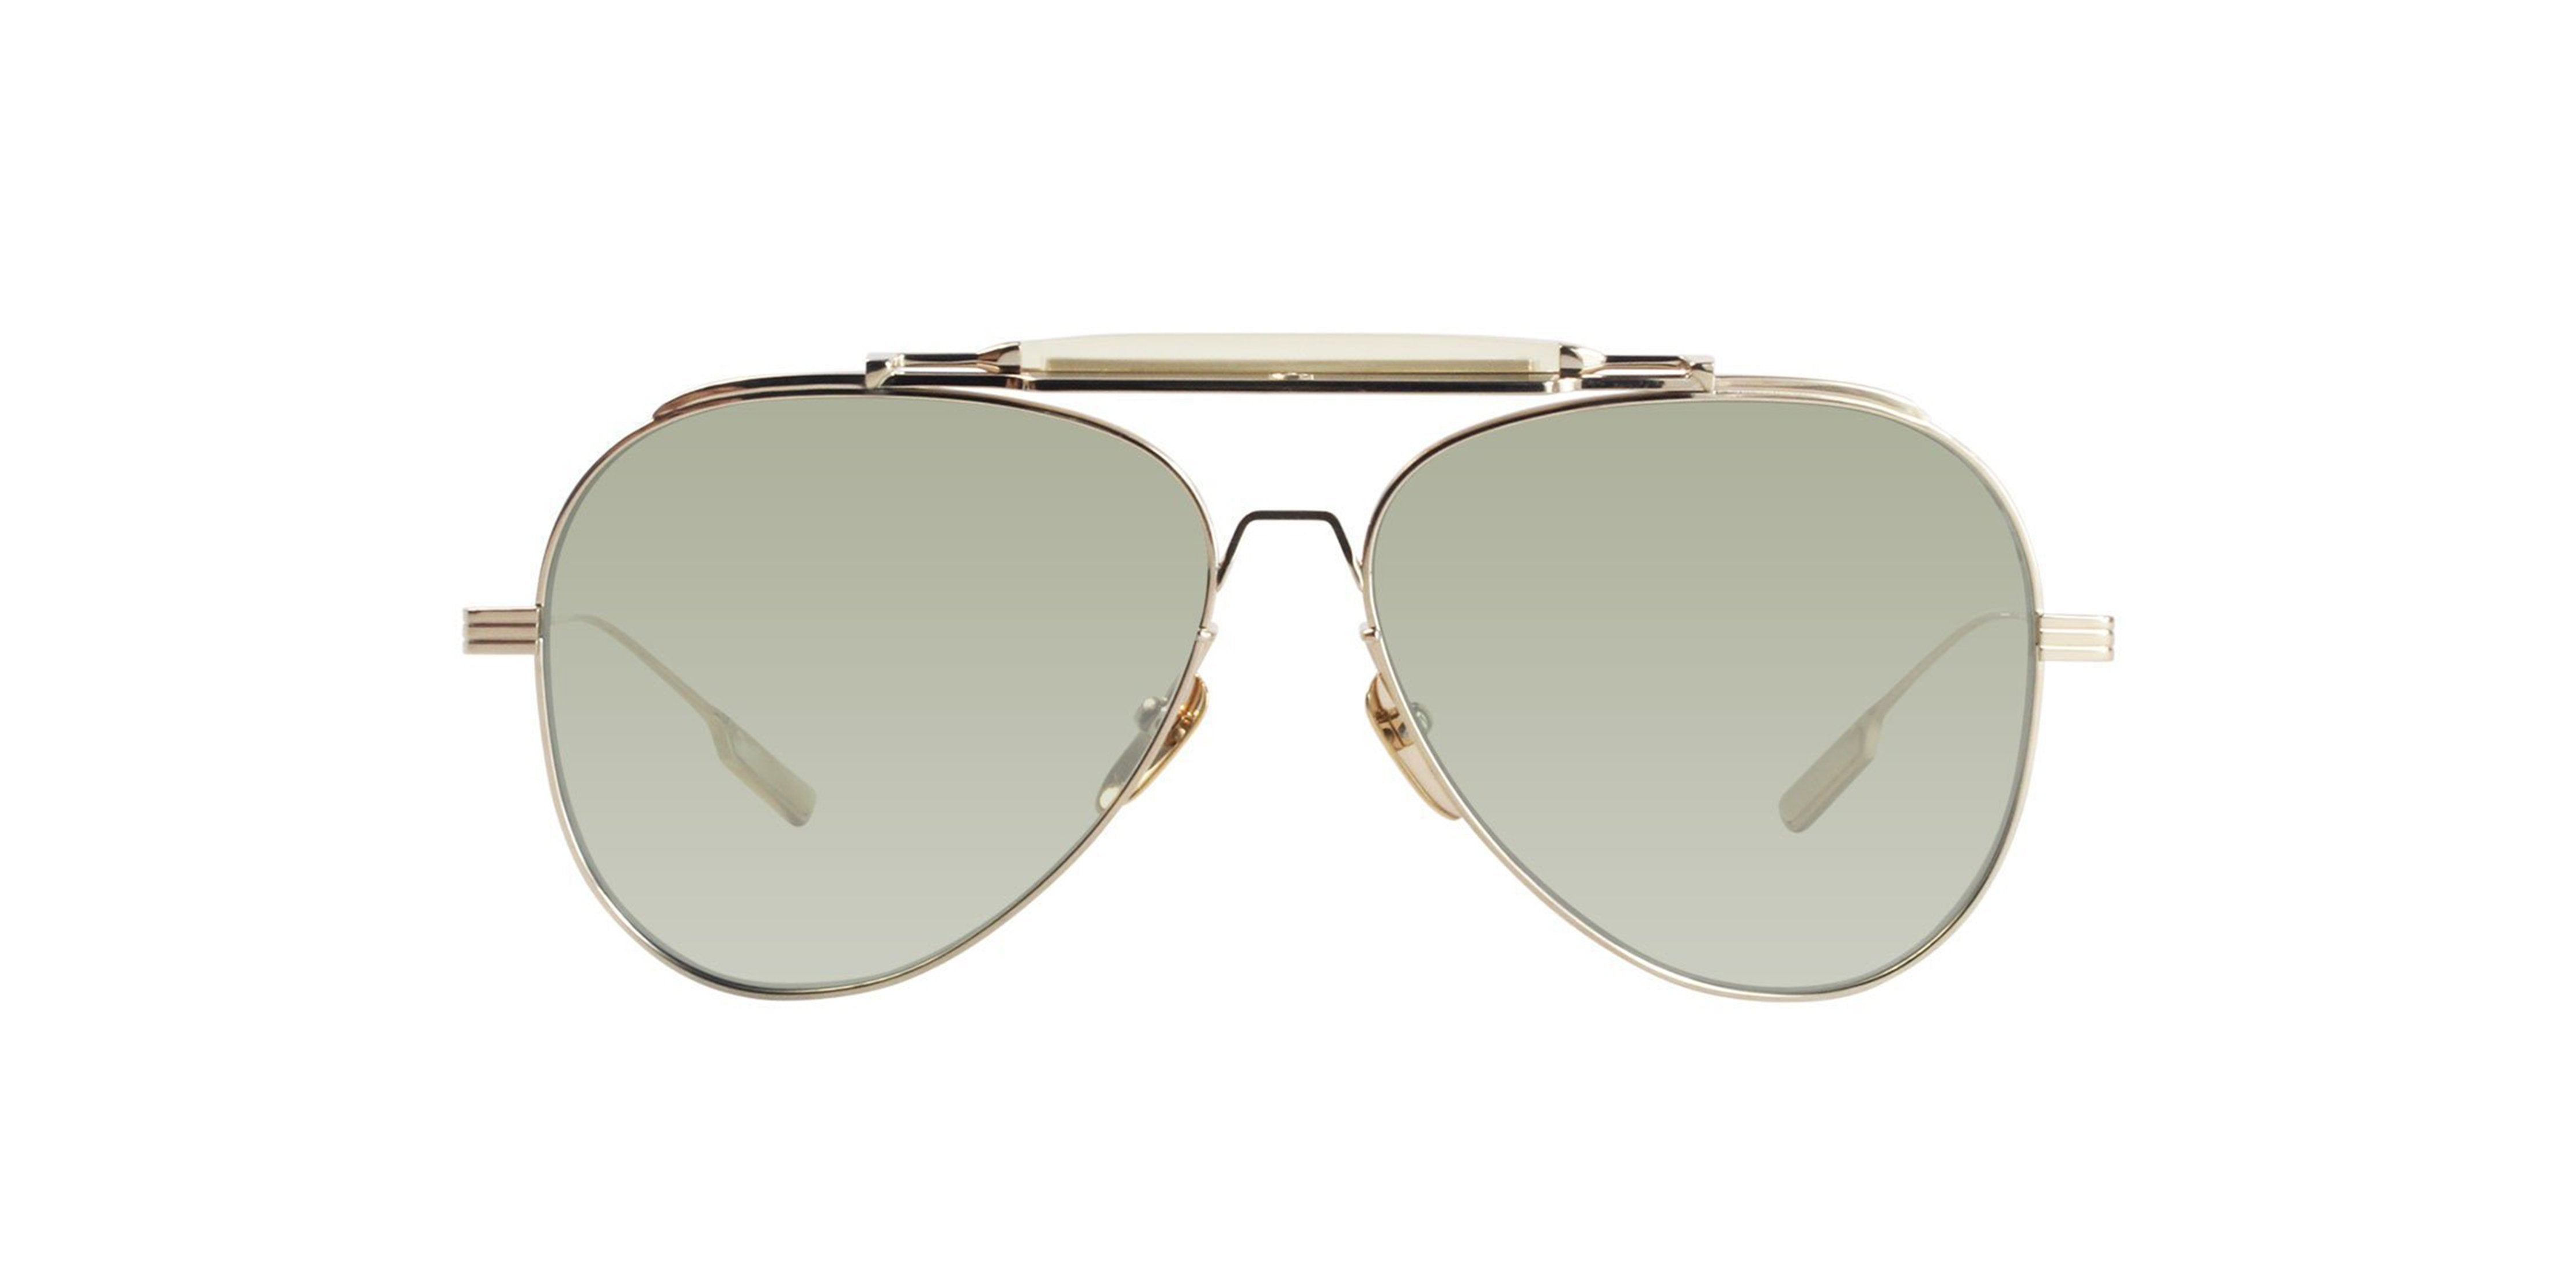 Jacques Marie Mage - Gonzo Peyote Light Gold/Light Green Aviator Unisex Sunglasses - 46mm-Sunglasses-Designer Eyes